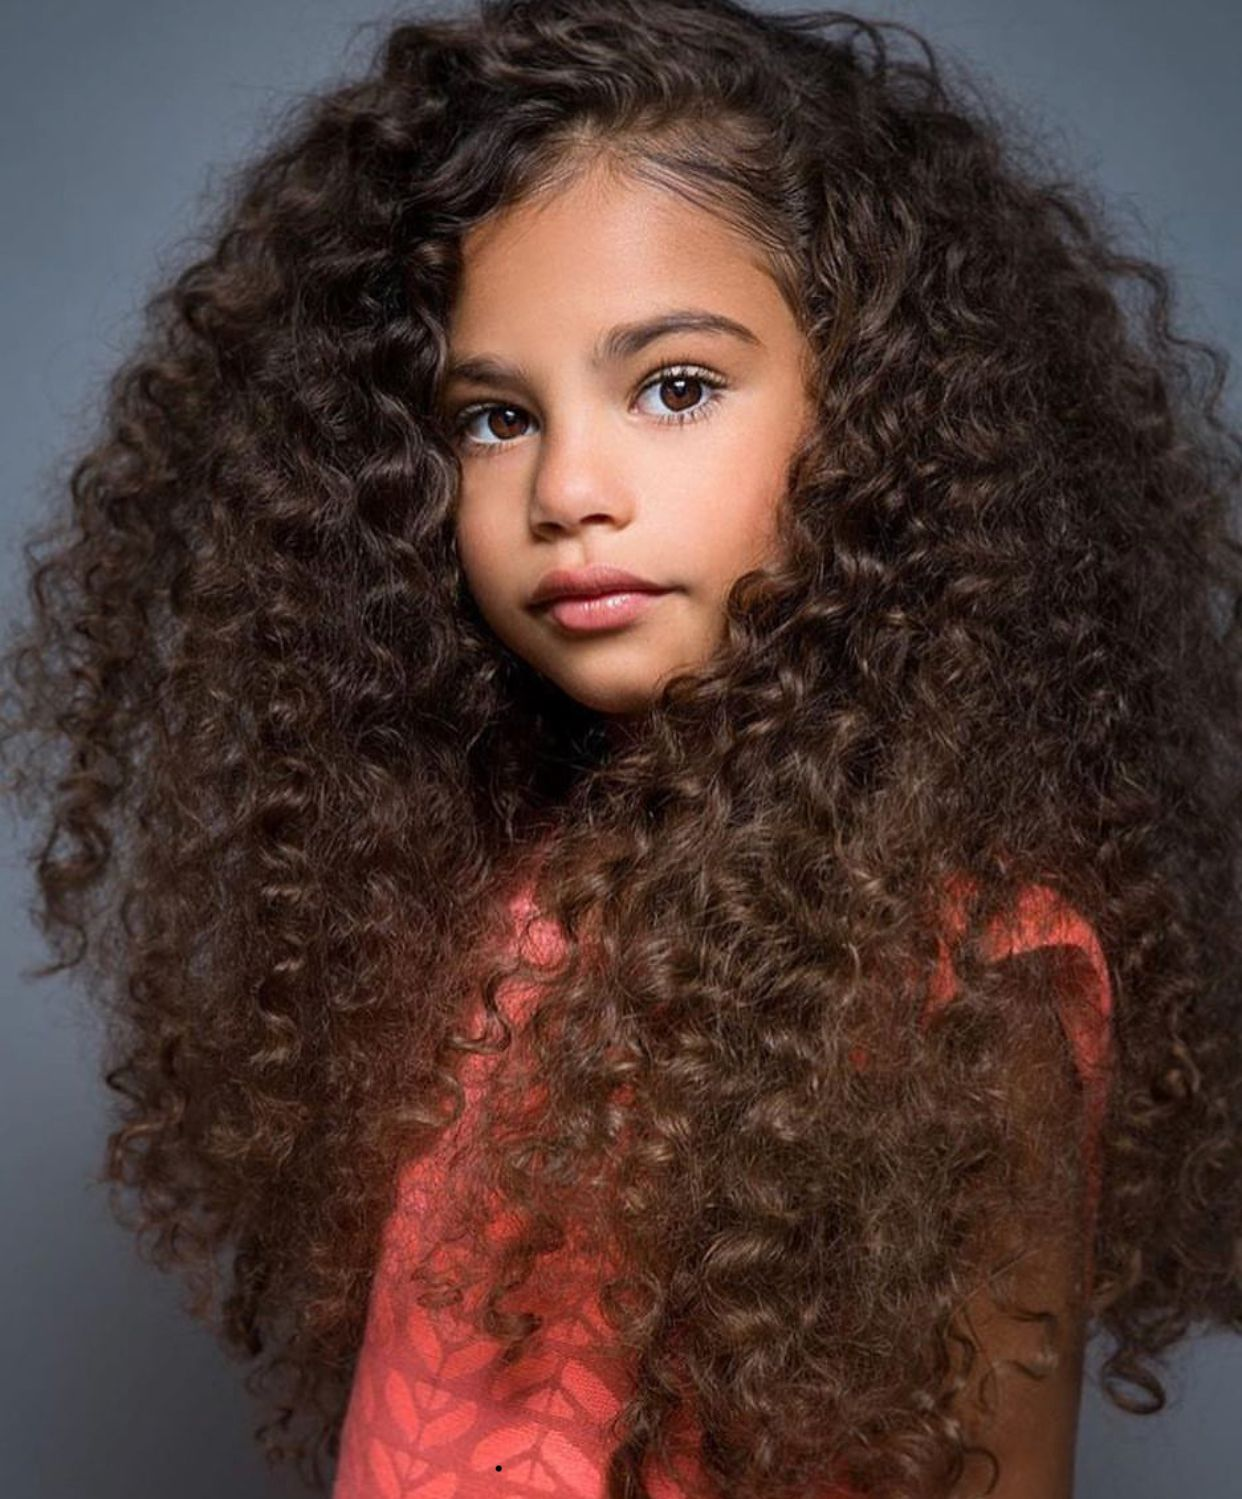 She S So Beautiful Identify And Track Your Eye Color Or That Of A Family Member Friend Or Even Your Pet By Simply Lookin Curly Hair Styles Hair Styles Hair